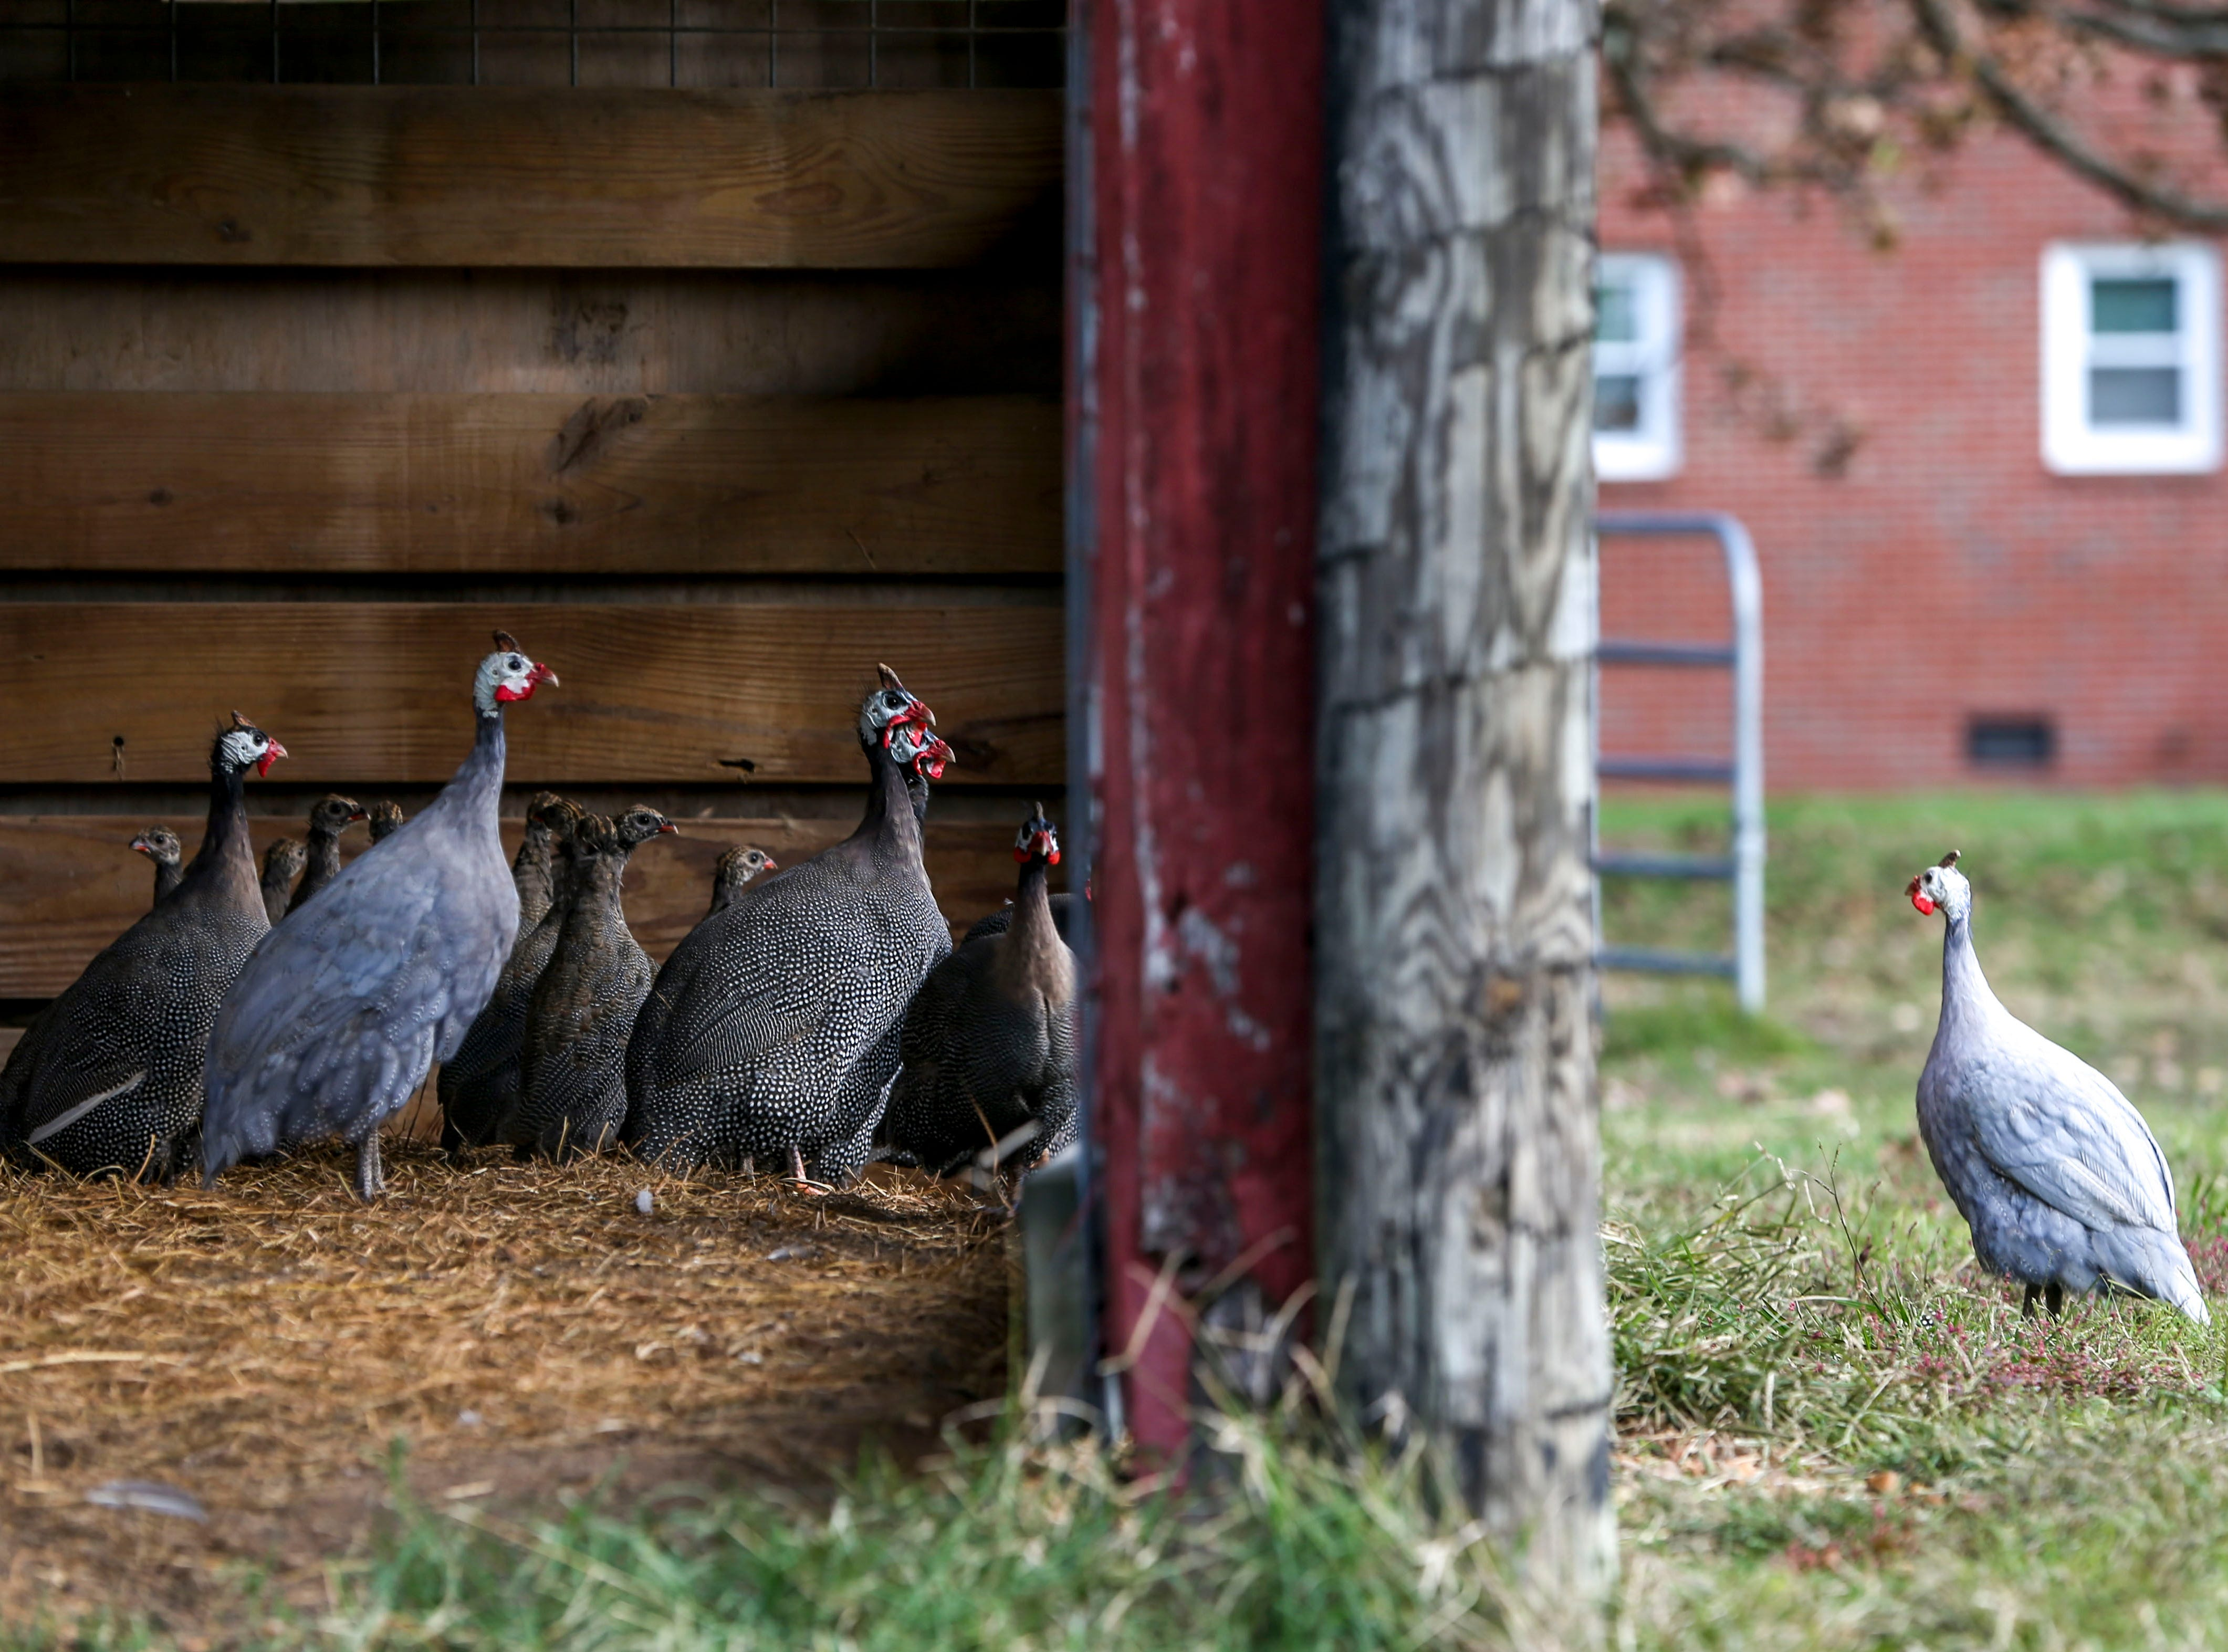 Guineafowl, birds that eat pests and most insects, stare at one another through a fence at Stillwaters Farm in Henderson, Tenn., on Monday, Nov. 5, 2018.